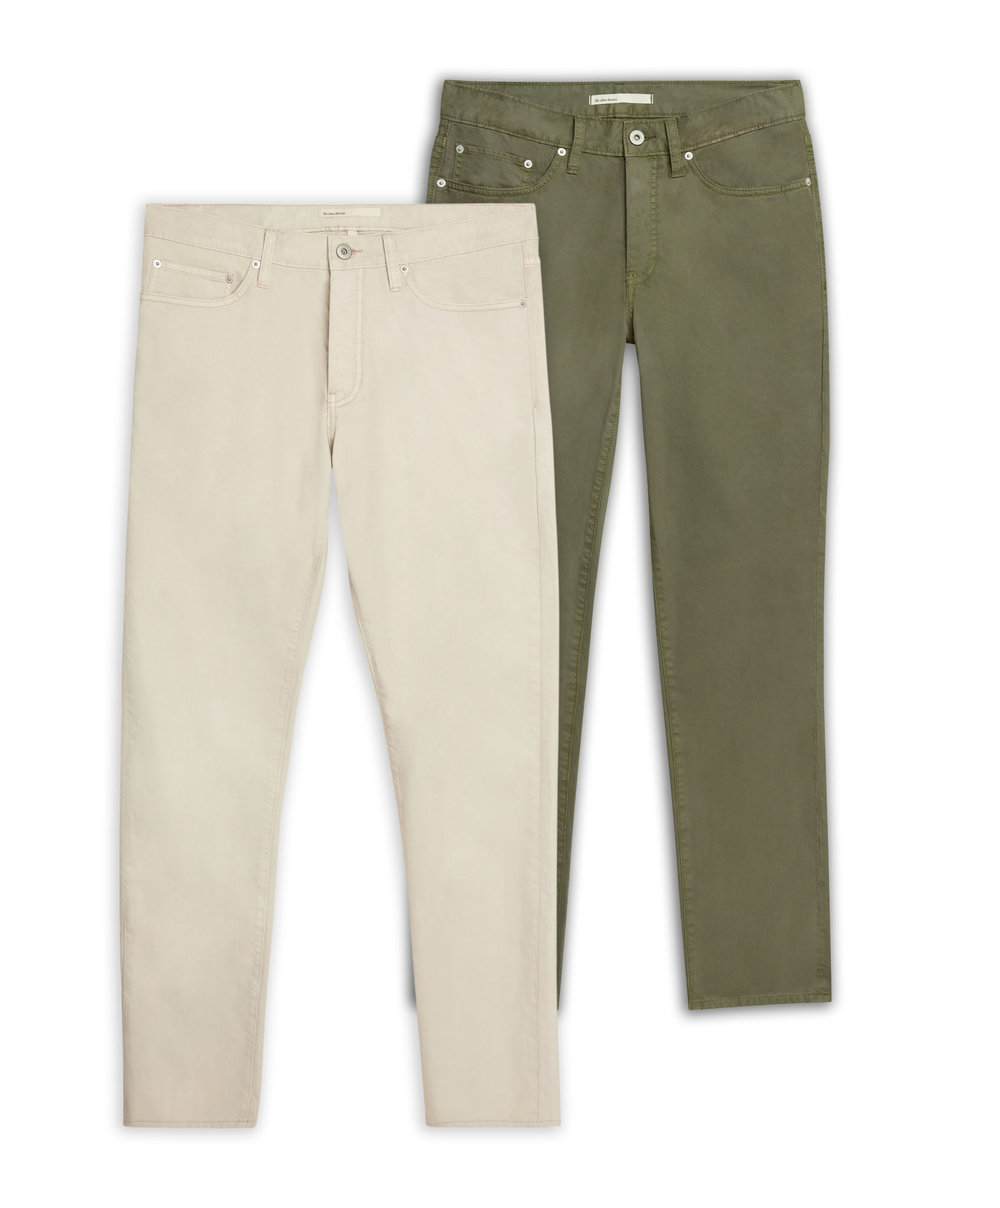 Shop the Classic 5 Pocket Pant  (Left: Birch / Right: Olive)